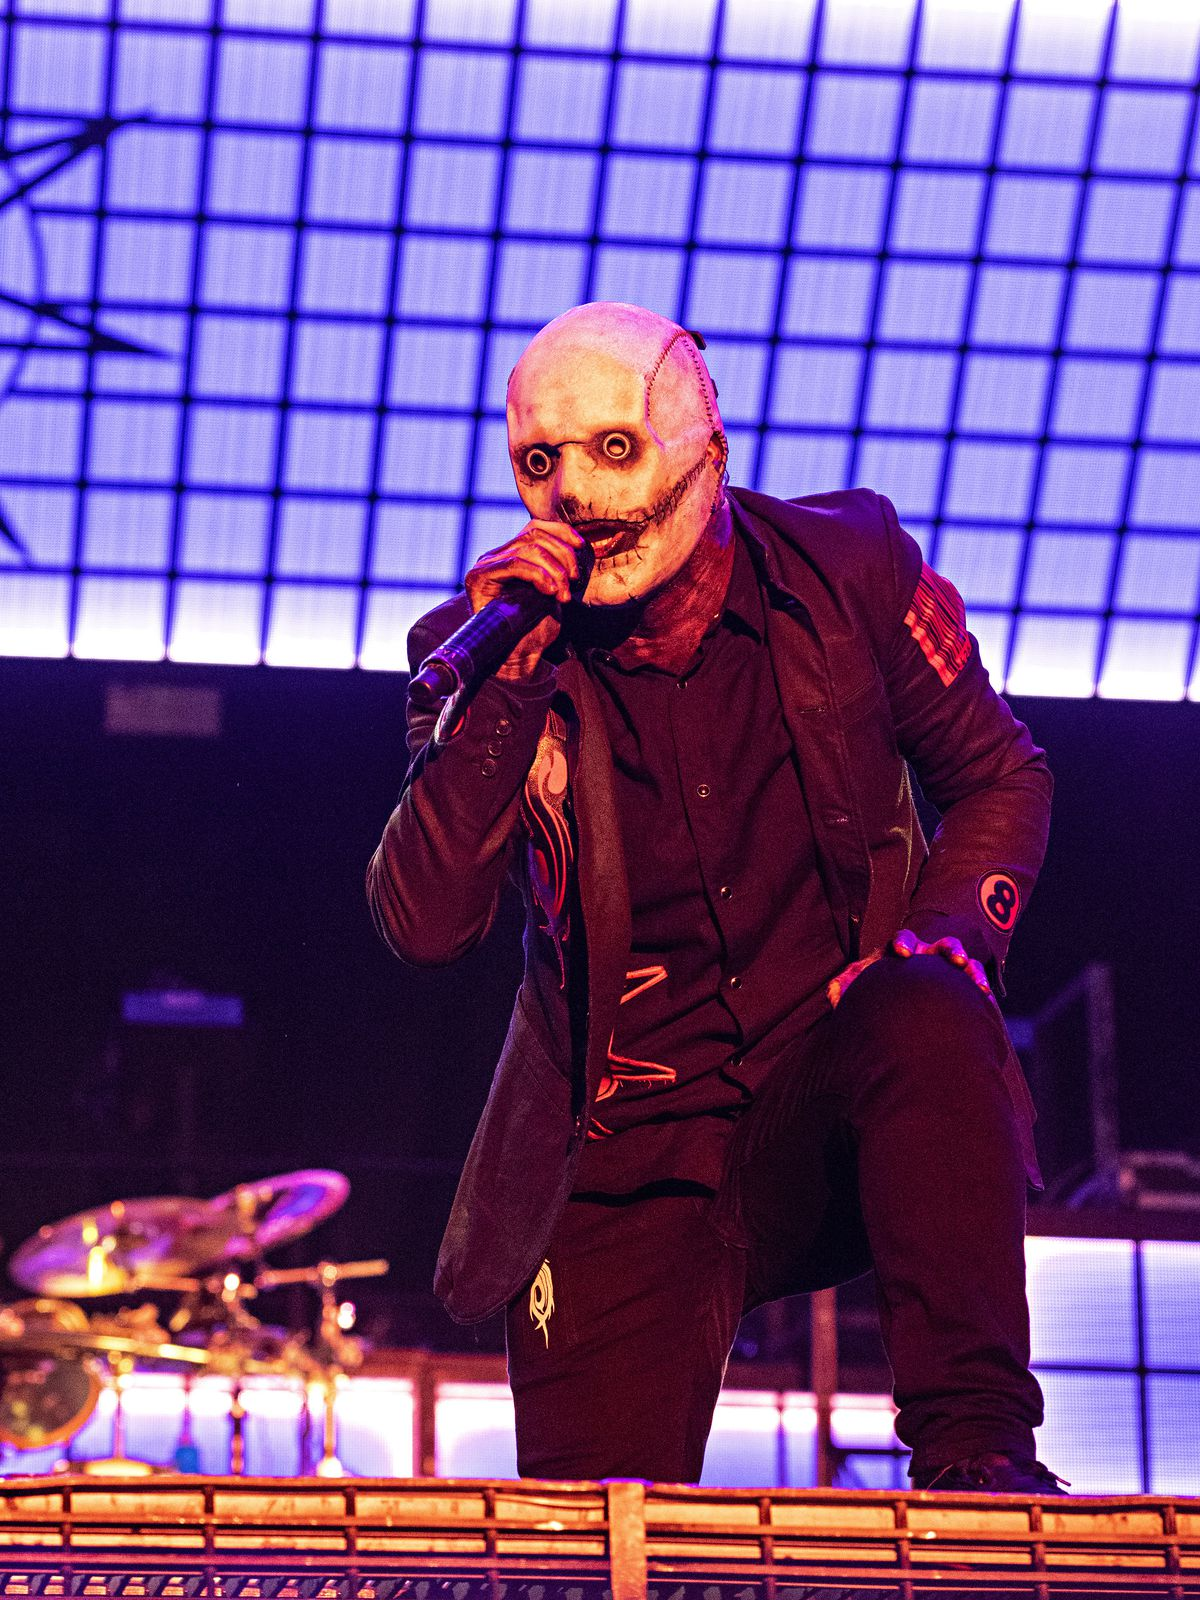 Corey Taylor of Slipknot performs at Inkcarceration Music and Tattoo Festival on Friday, Sept. 10, 2021, at the Ohio State Reformatory in Mansfield, Ohio.